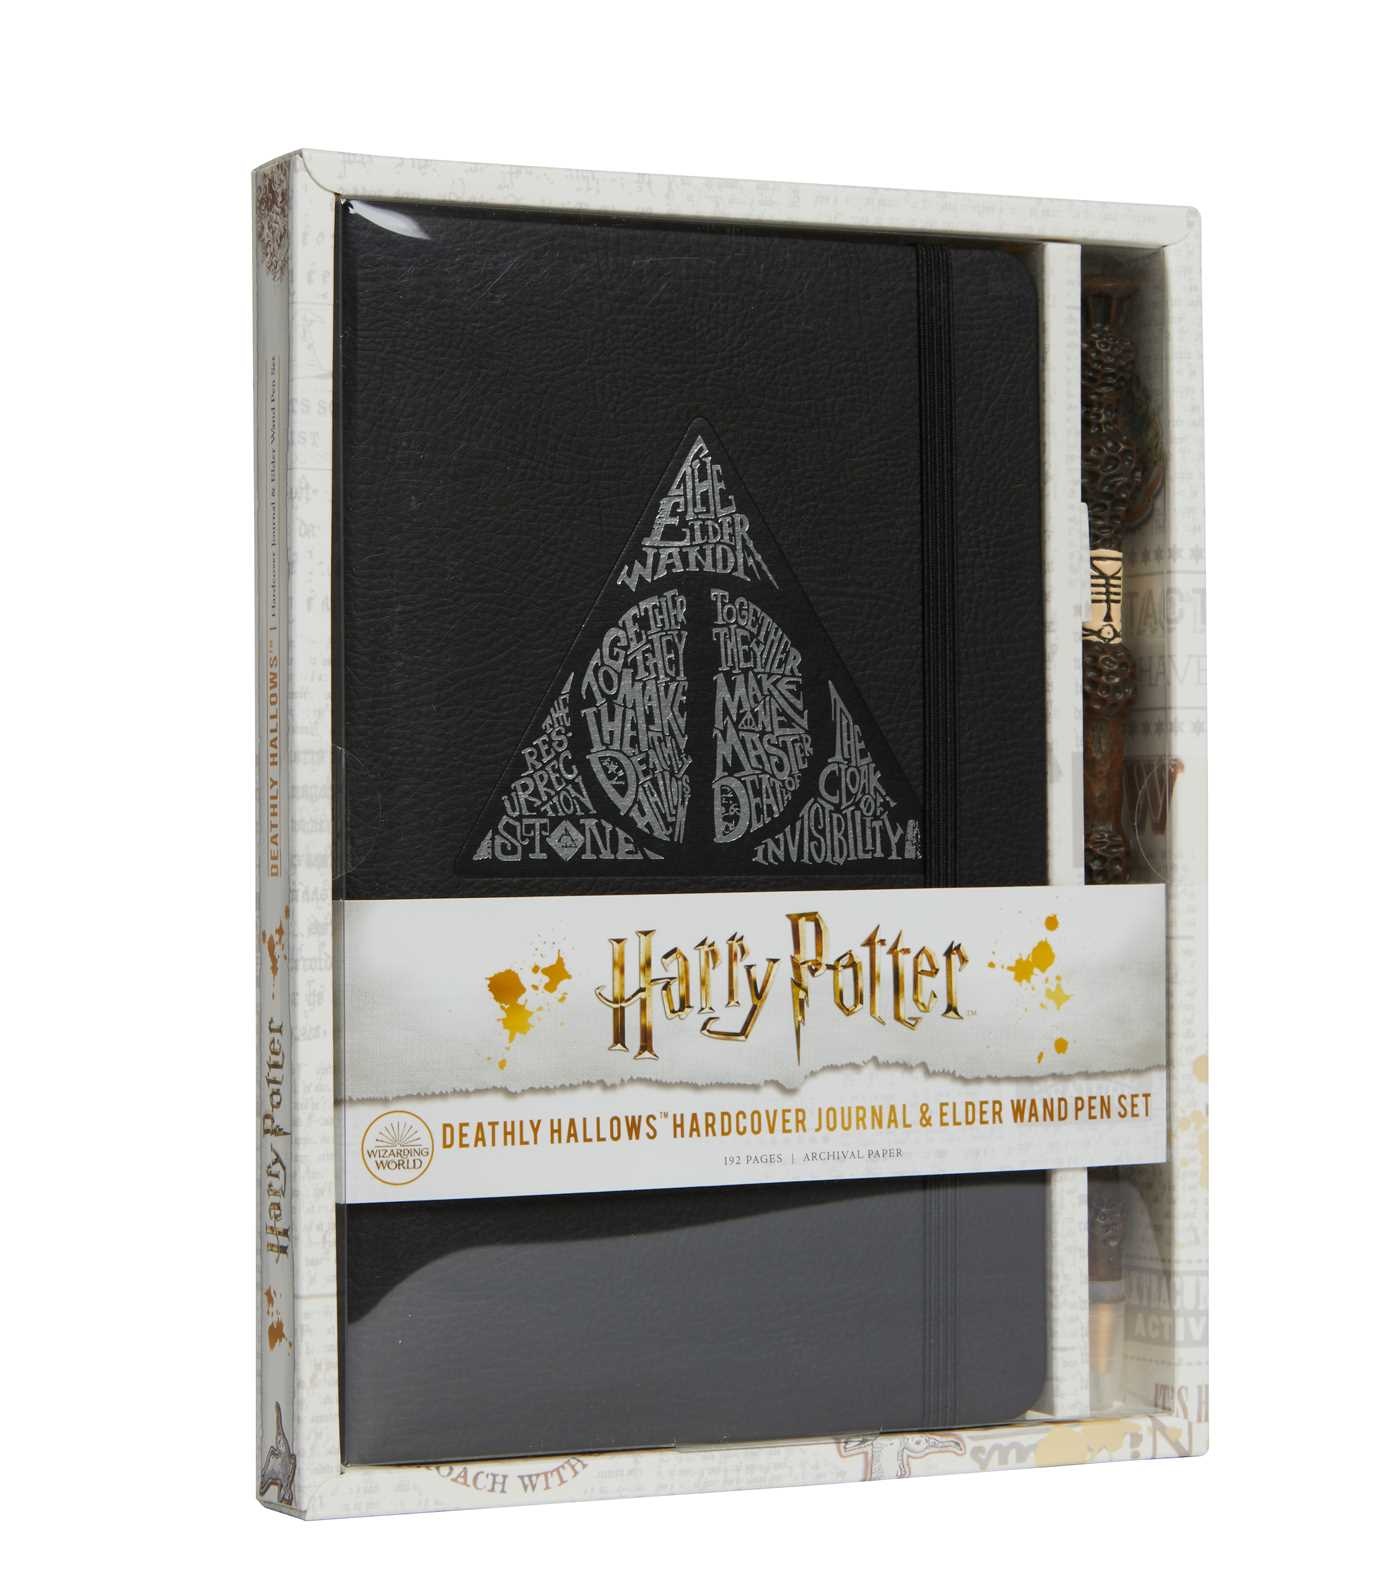 Harry Potter: Deathly Hallows Hardcover Journal and Elder Wand Pen Set | Papeterie fine